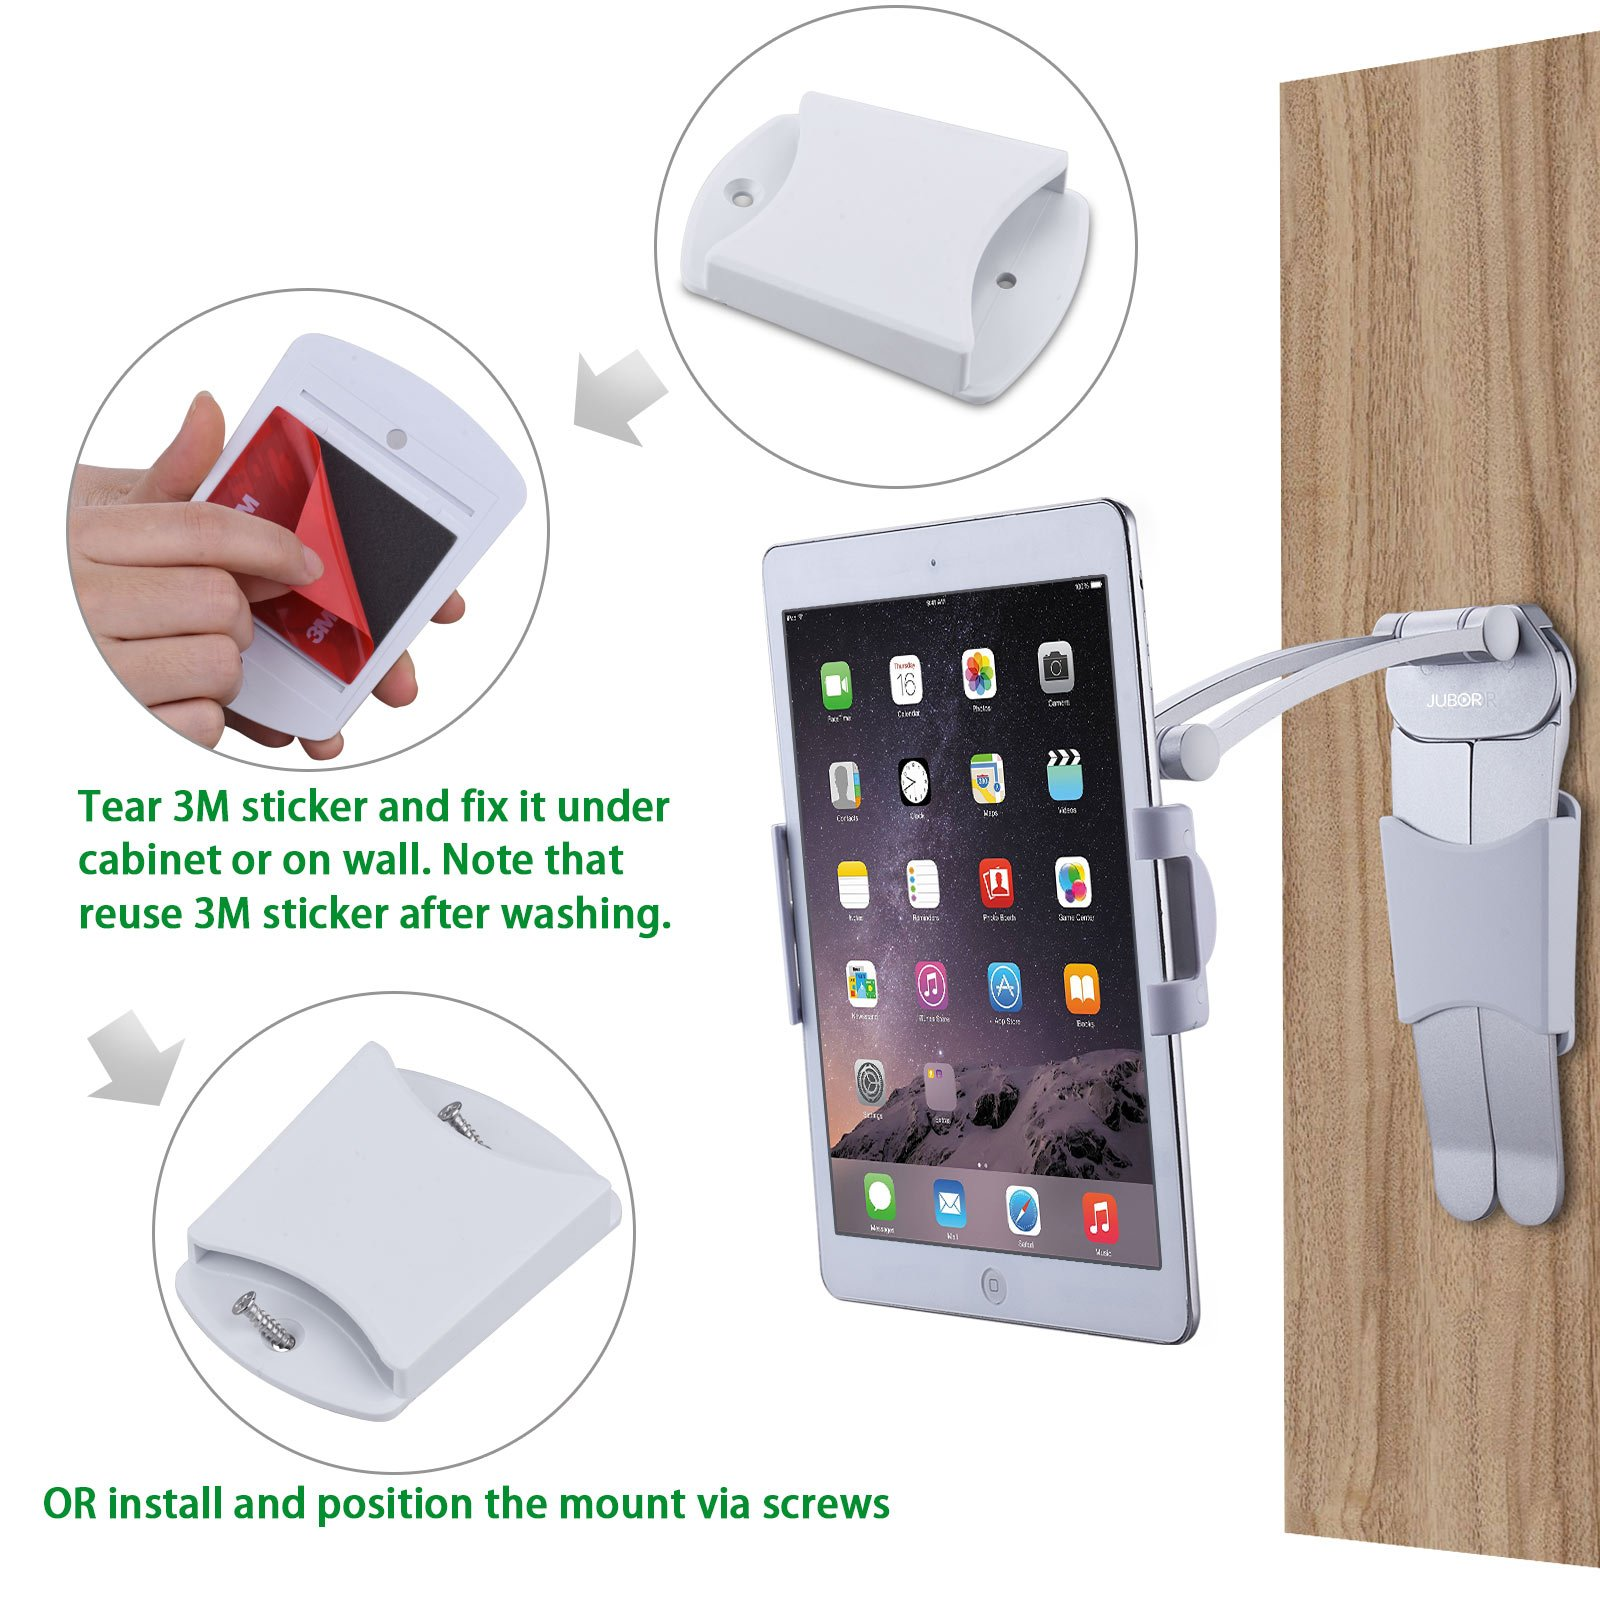 Jubor iPad Stand Wall Mount, 2-in-1 Kitchen Tablet Holder for iPad Pro, Surface Pro, Nintendo Switch, iPad Mini, 7''-12'' Tablet, Adjustable Easy Install 360° Rotating CounterTop Desk Recipe by Jubor (Image #5)